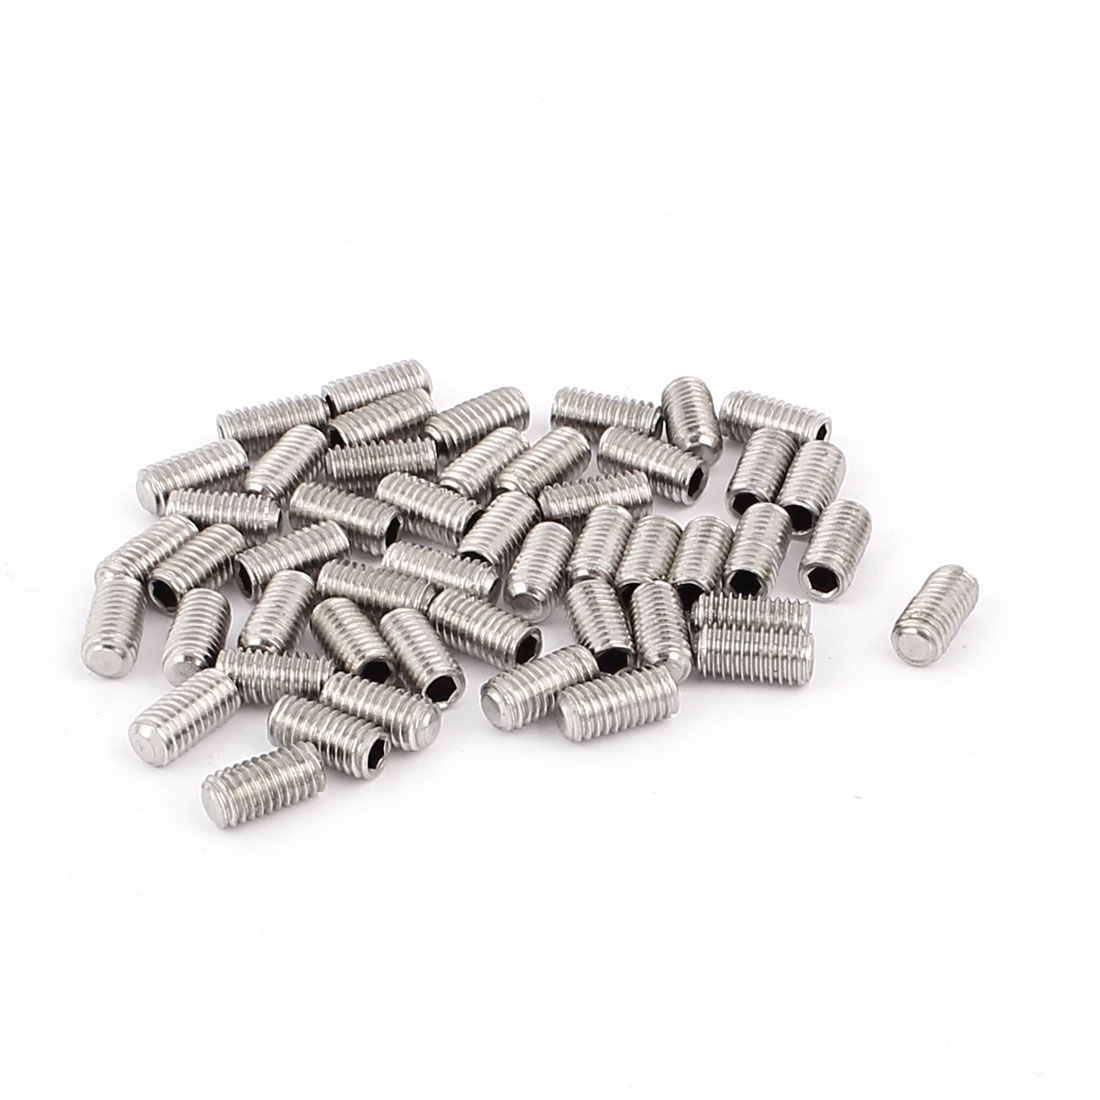 50pcs M5x10mm Hexagon Socket Flat Point Set Screw Grub Screws